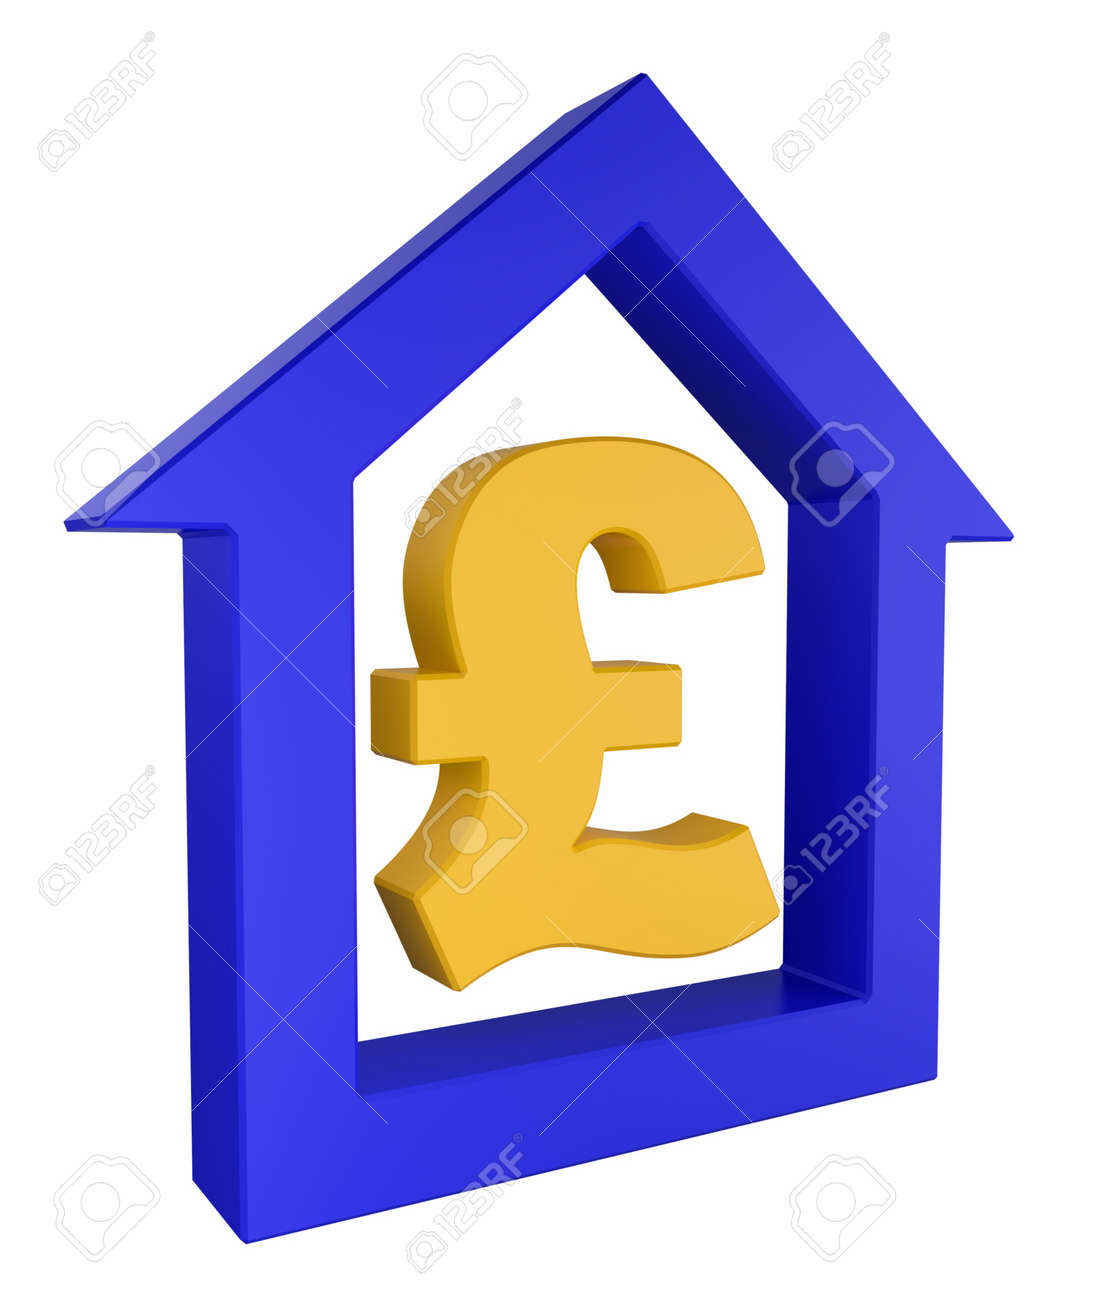 House Icon With Pound Great Britain Currency Symbol Stock Photo